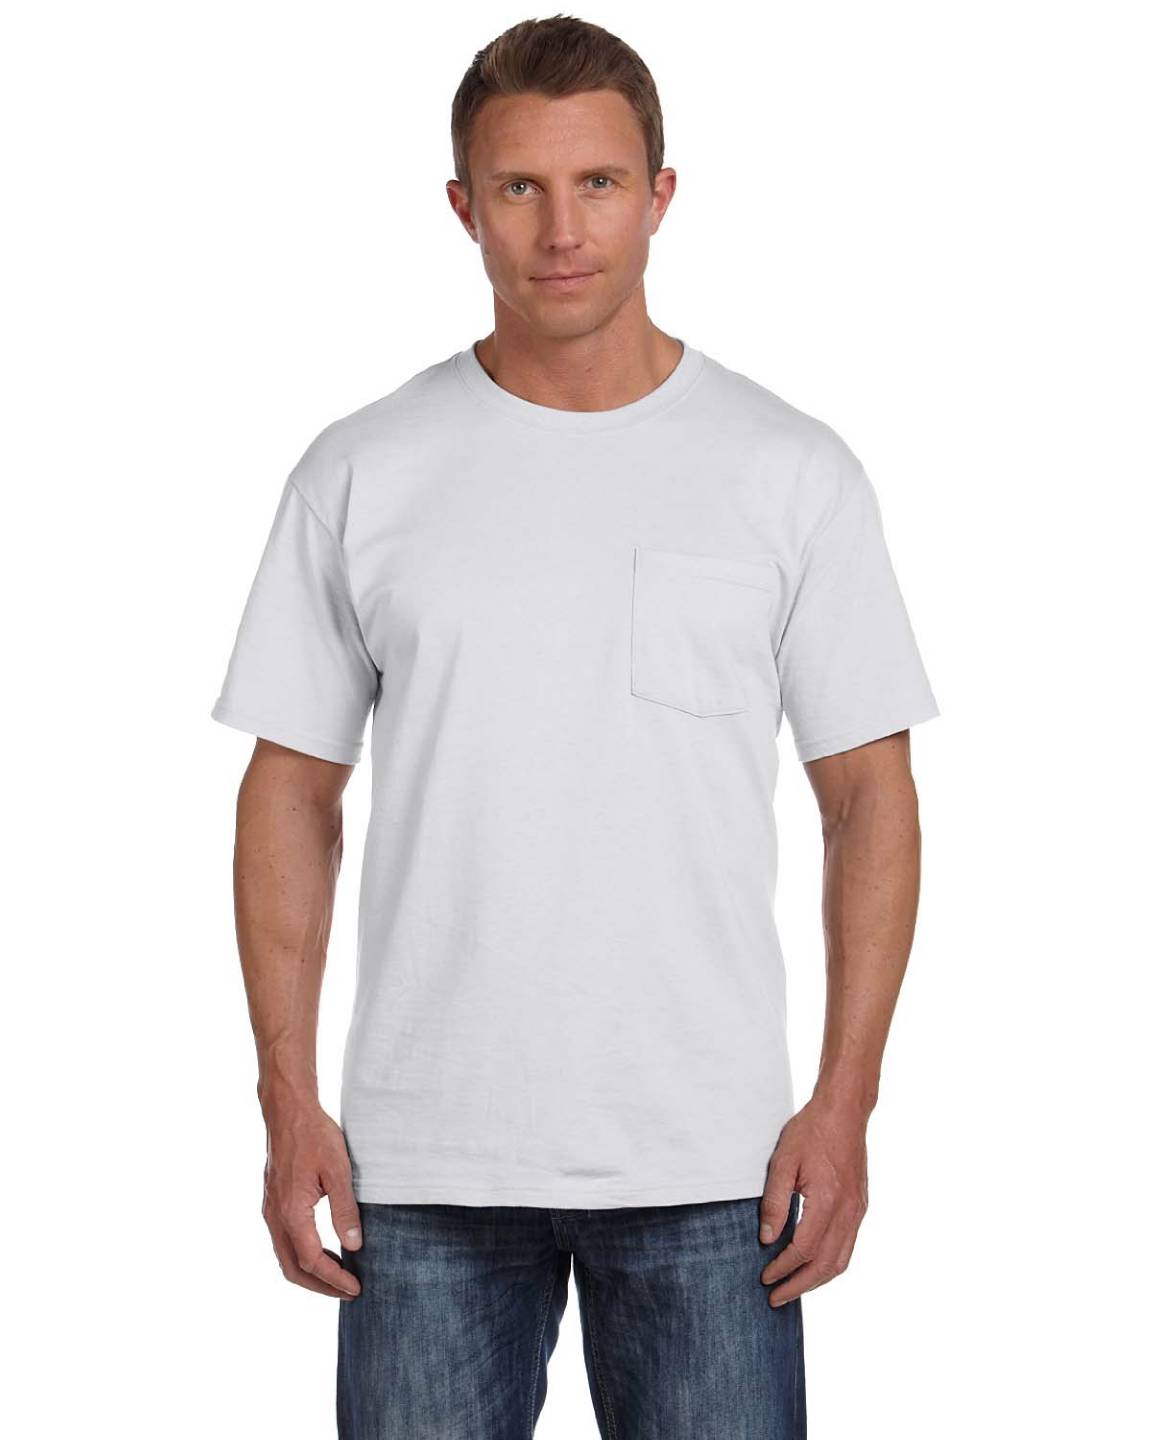 Fruit of the loom men 39 s 5 oz 100 heavy cotton pocket s 3xl for Mens 100 cotton t shirts